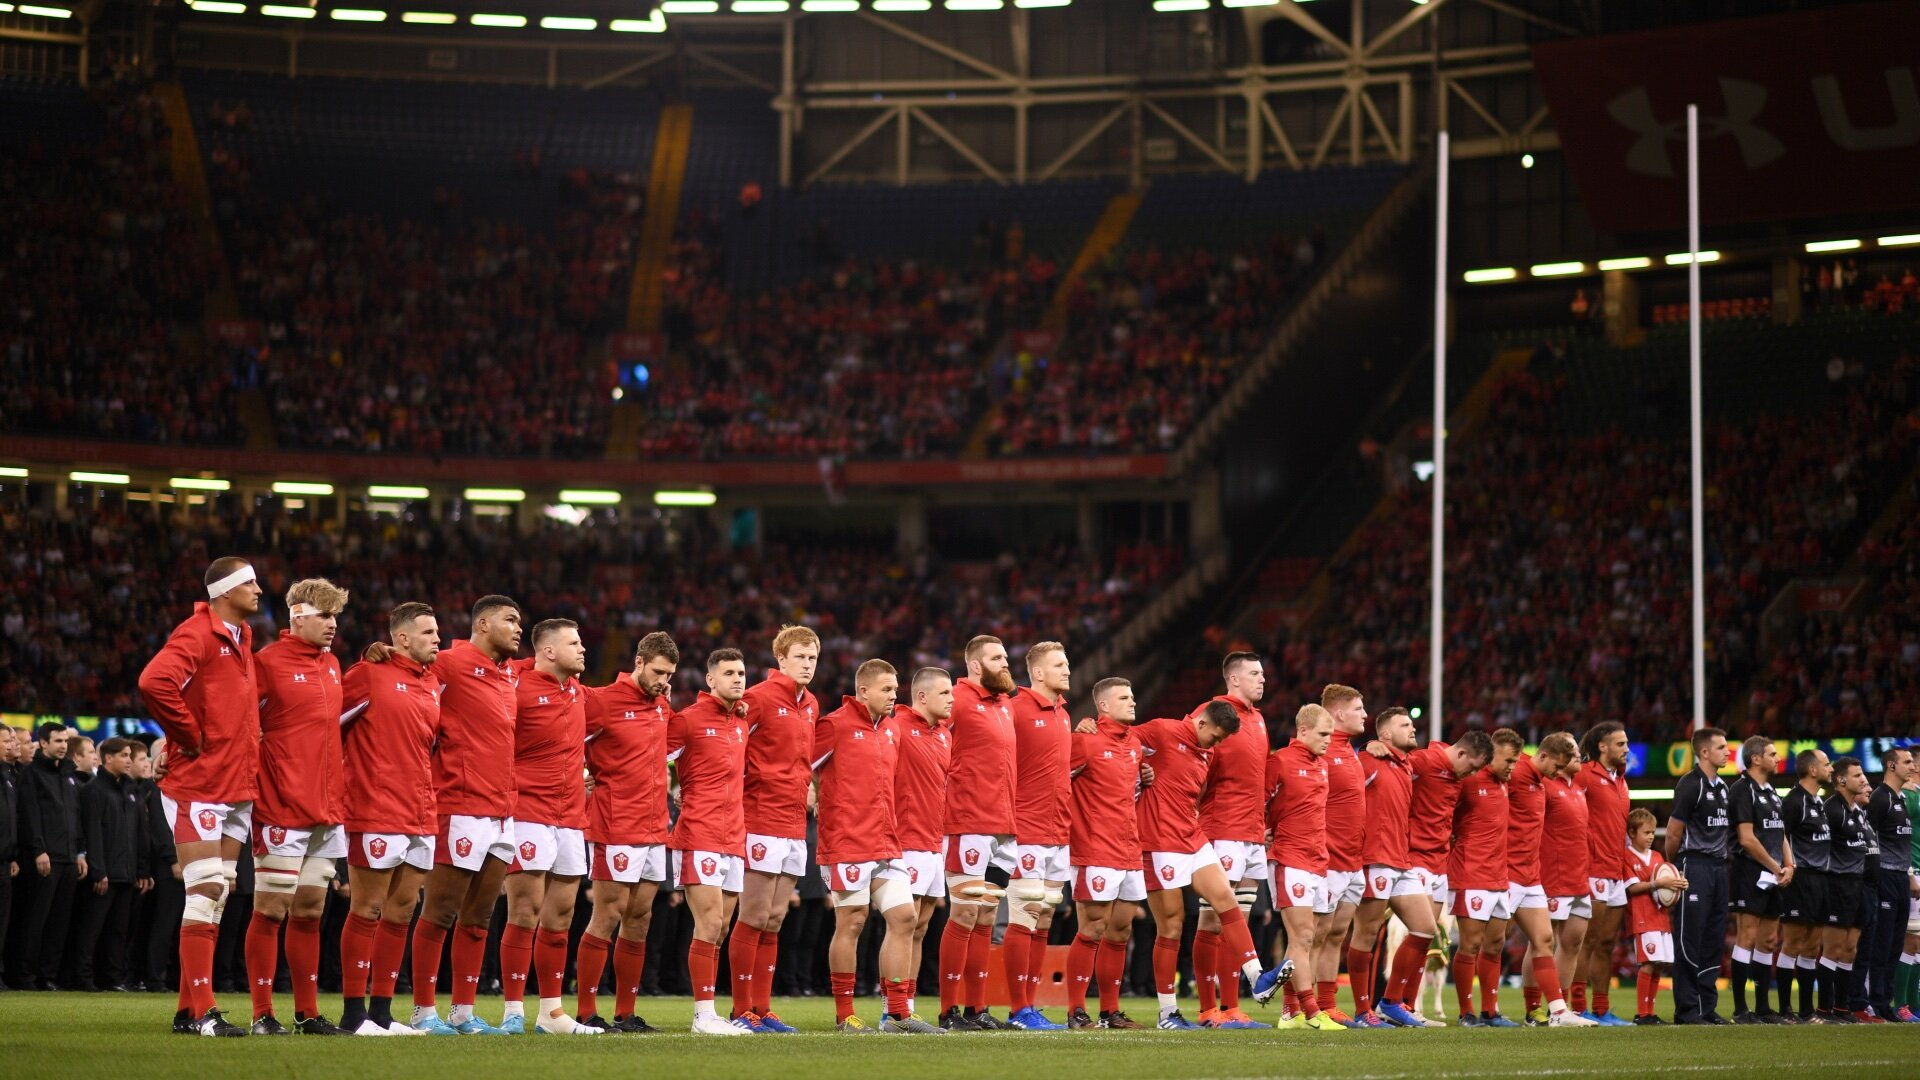 'No crowds will present severe challenges' - WRU issue financial warning in annual report